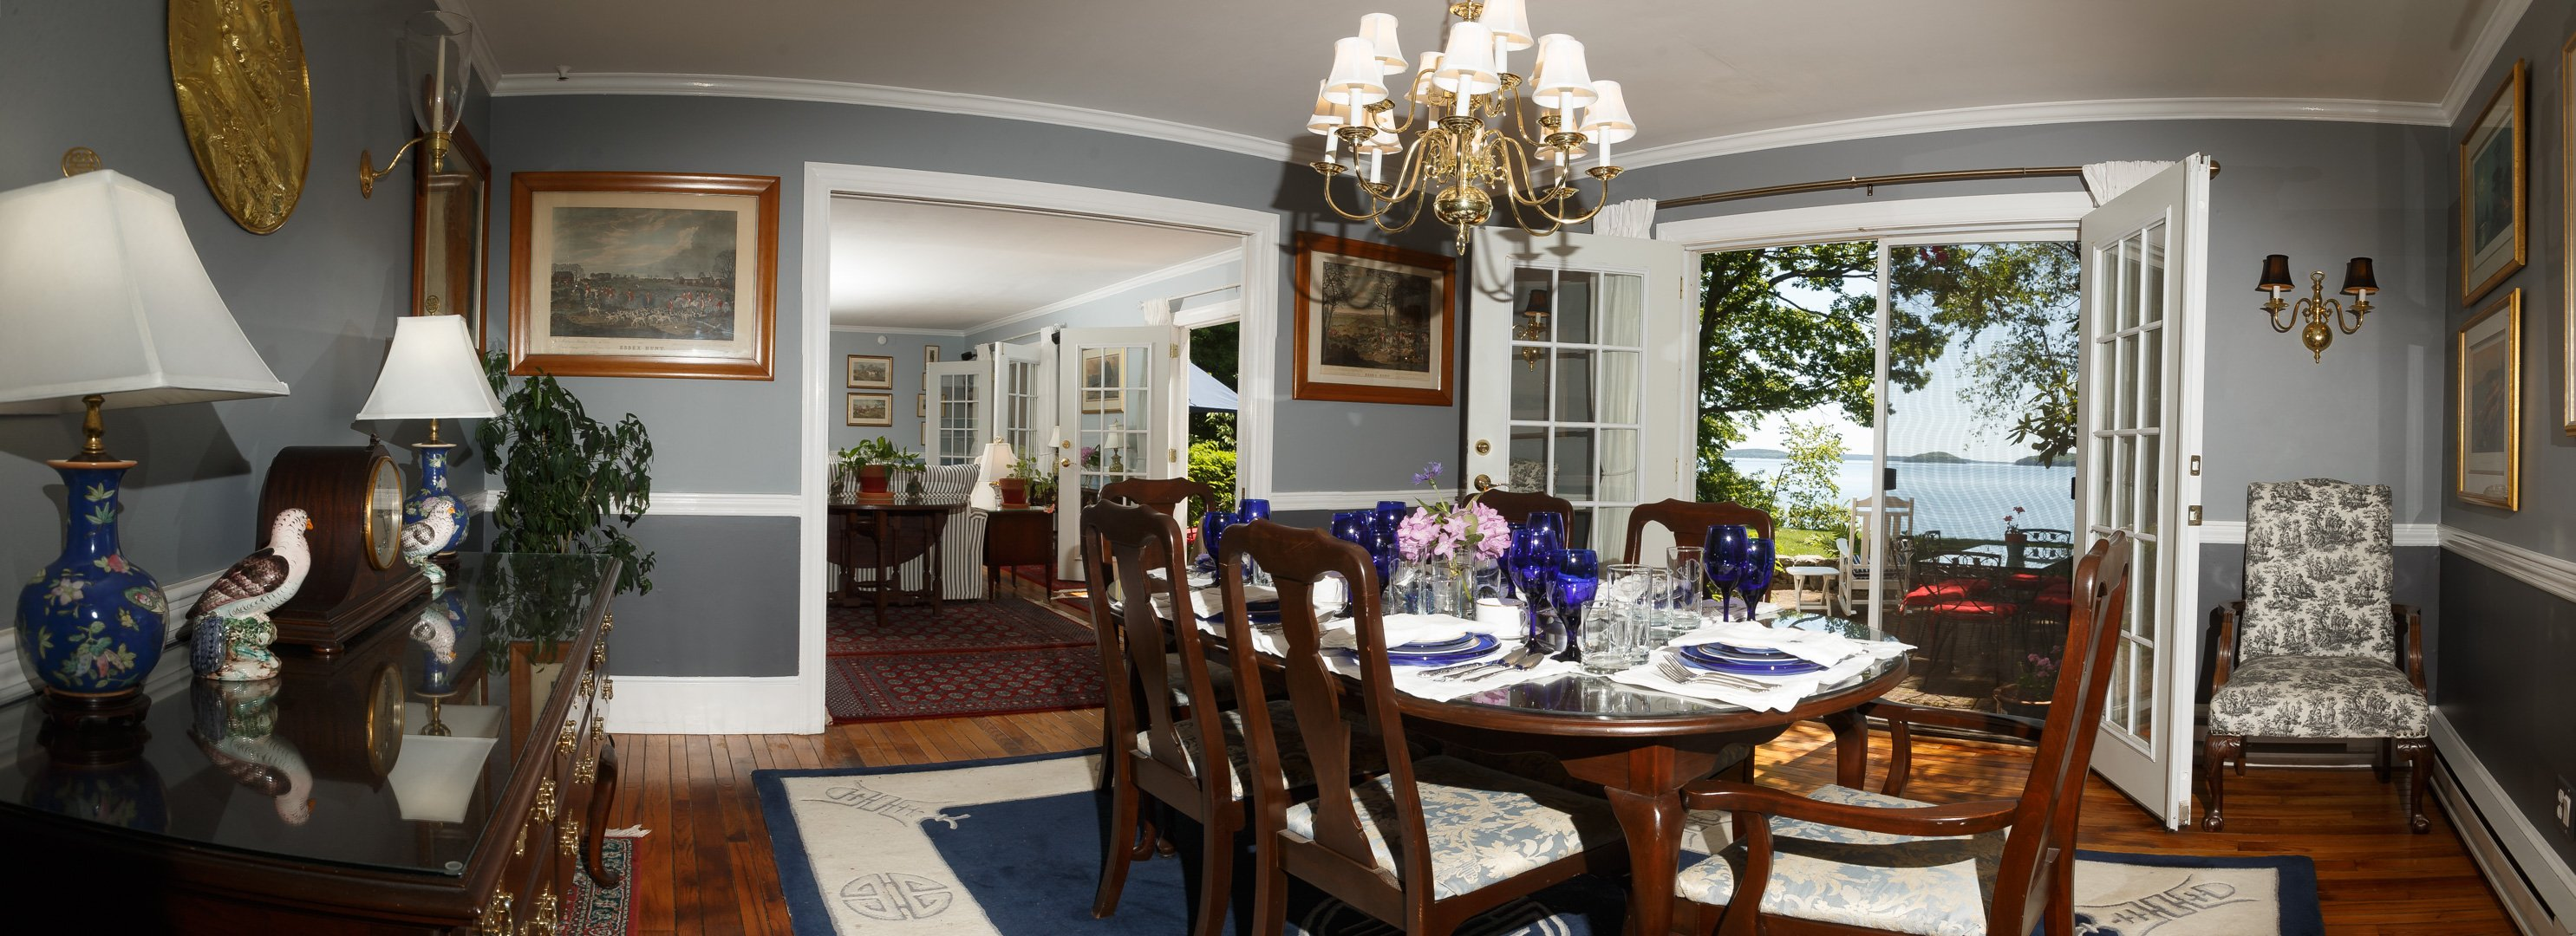 Formal dining room. Ocean view. French door to brick patio and outside dining. Stobart art. 200-year old English hunting prints. Antiques. Seats 8, plus 6 joined by table in living room.